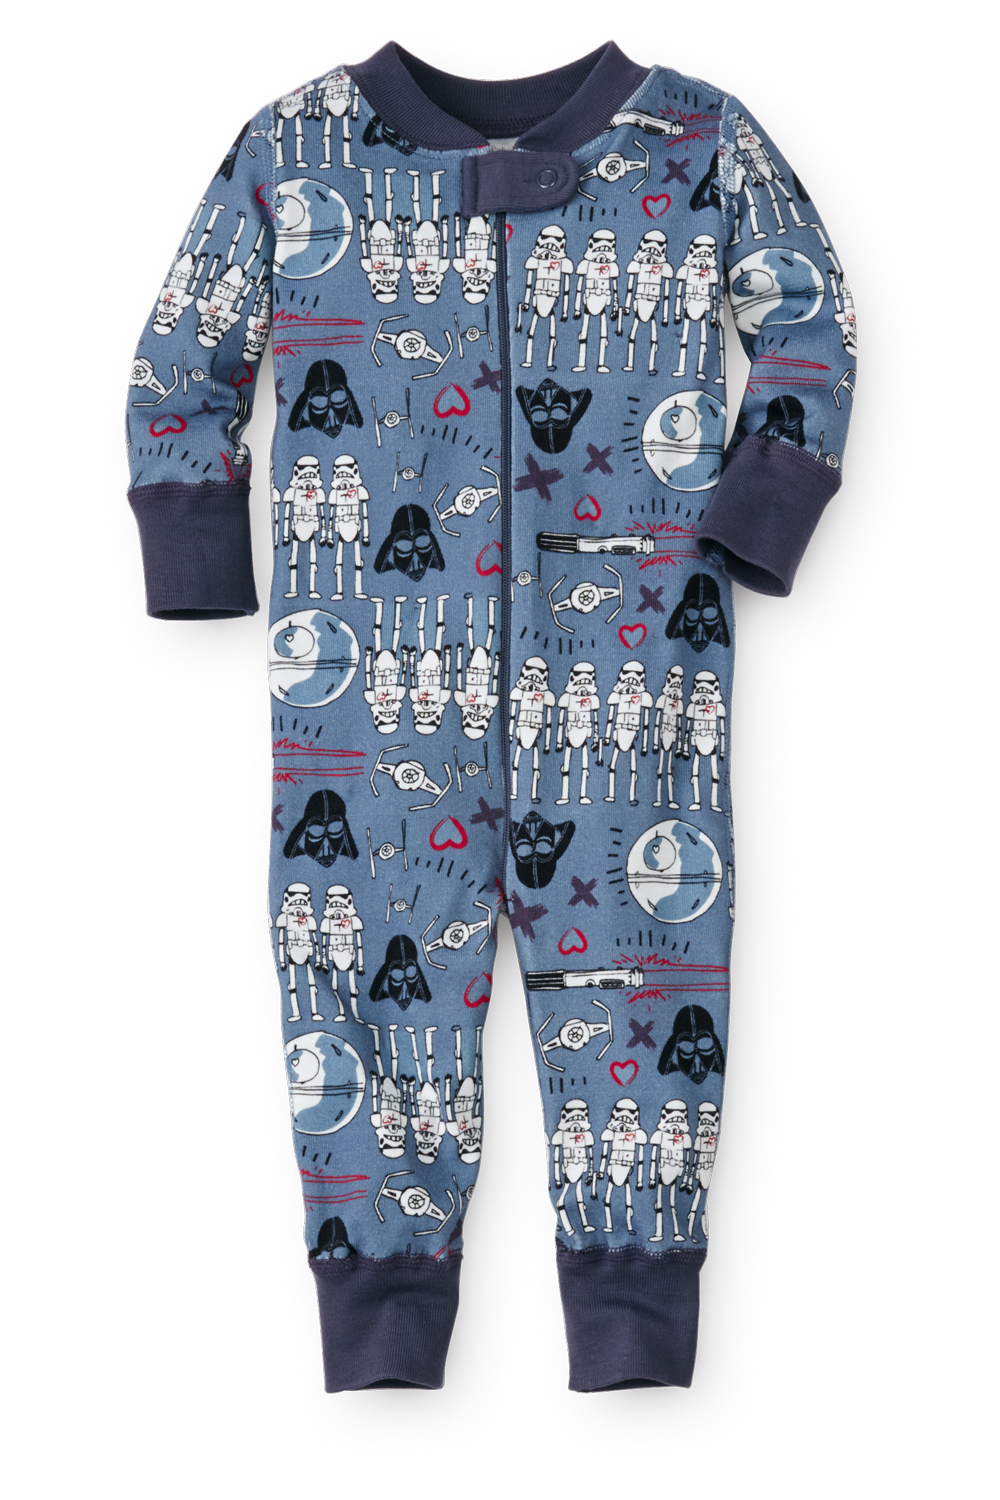 Valentine Star Wars Baby Pajamas in Organic Cotton